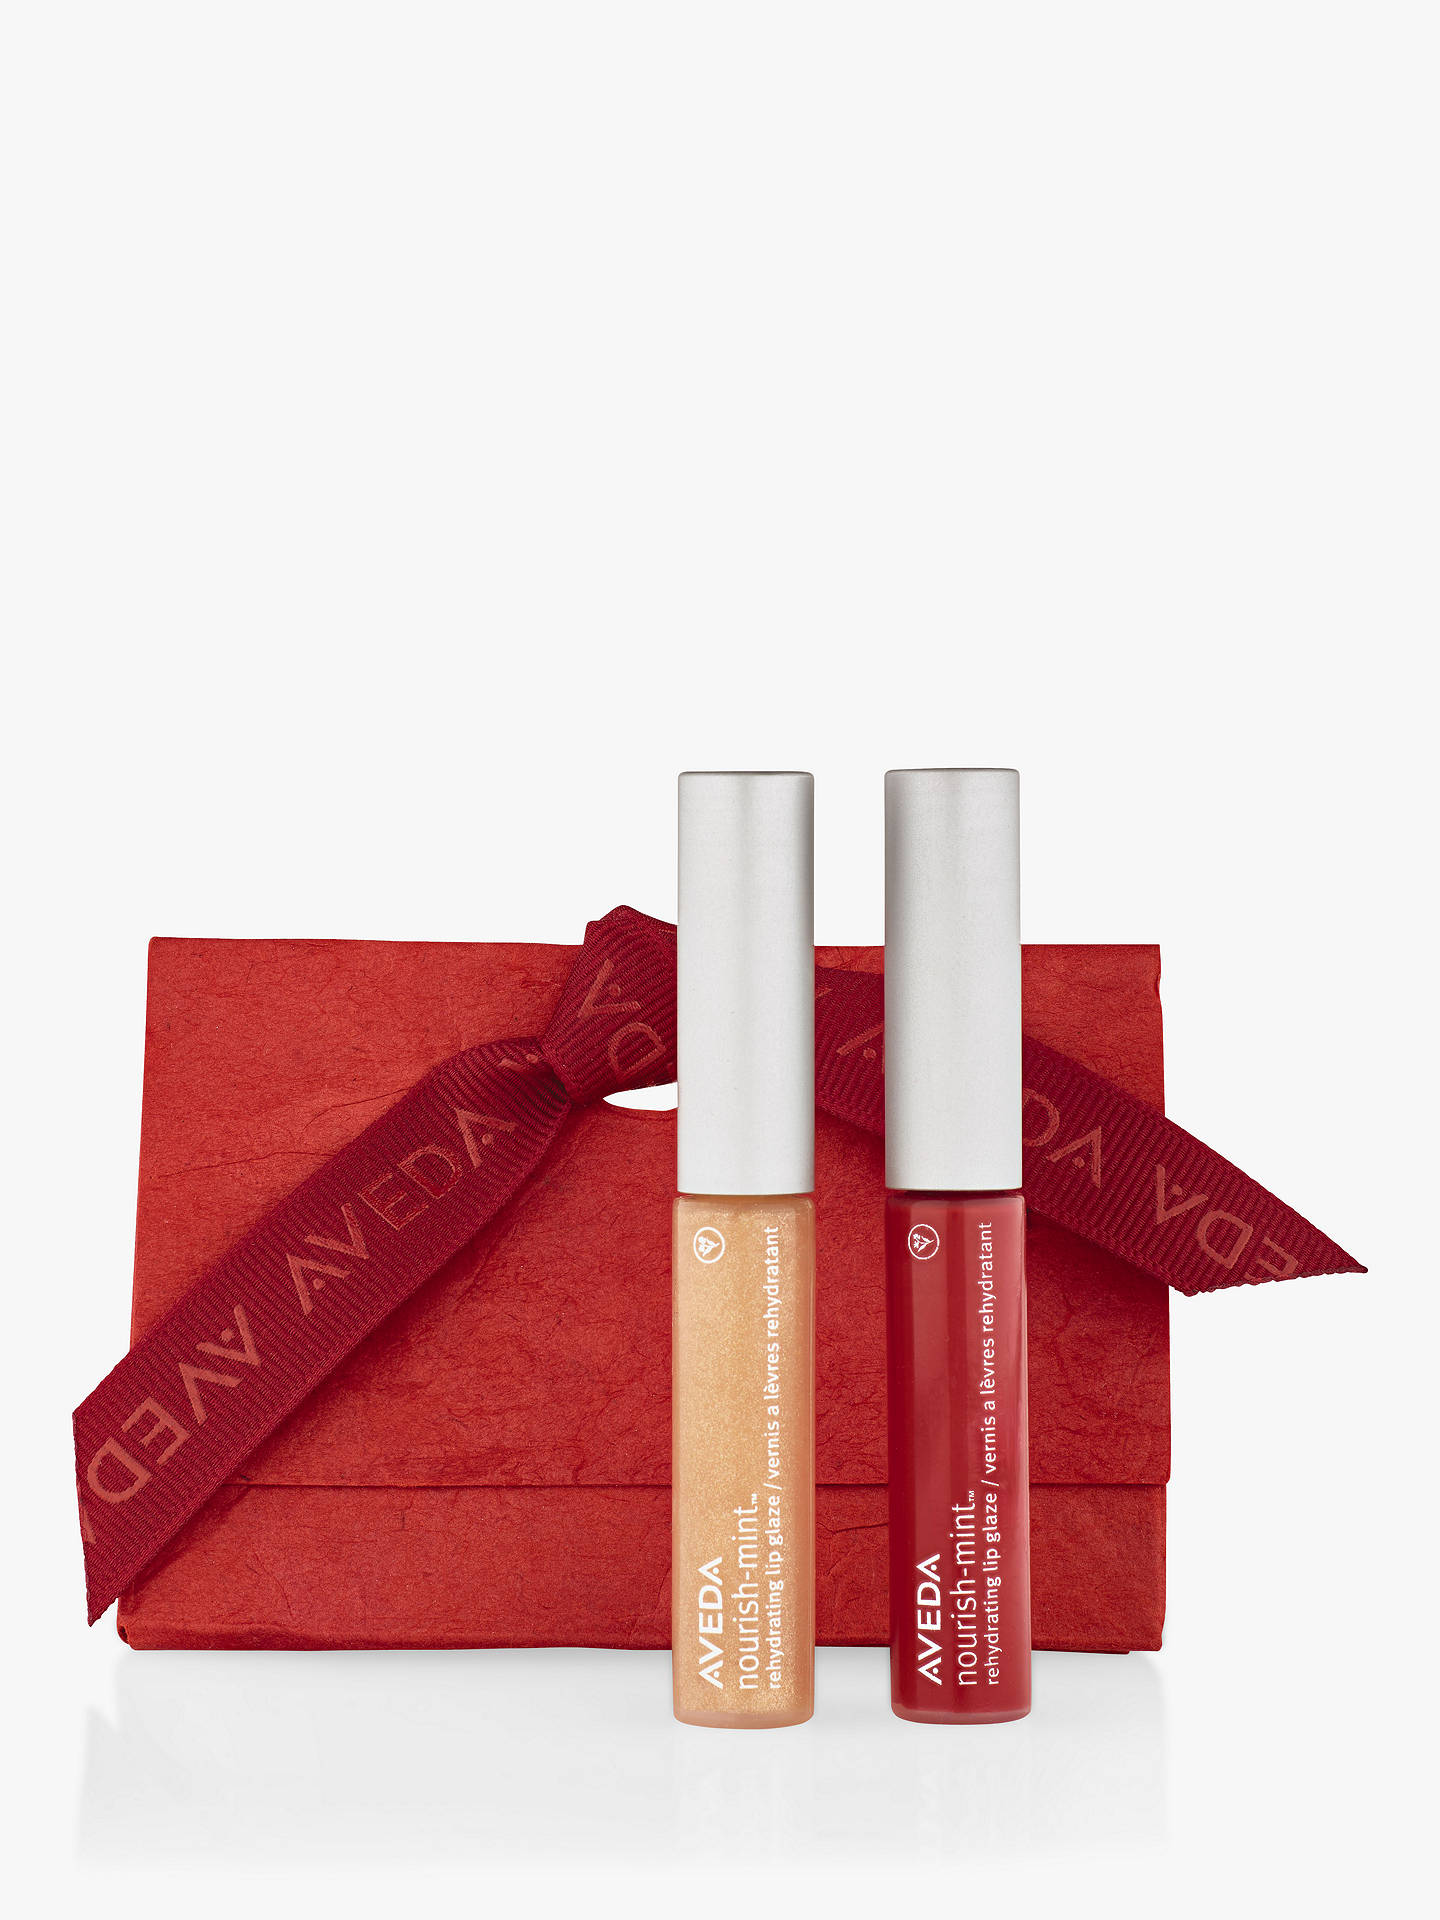 Buy AVEDA Make Her Smile Makeup Gift Set Online at johnlewis.com